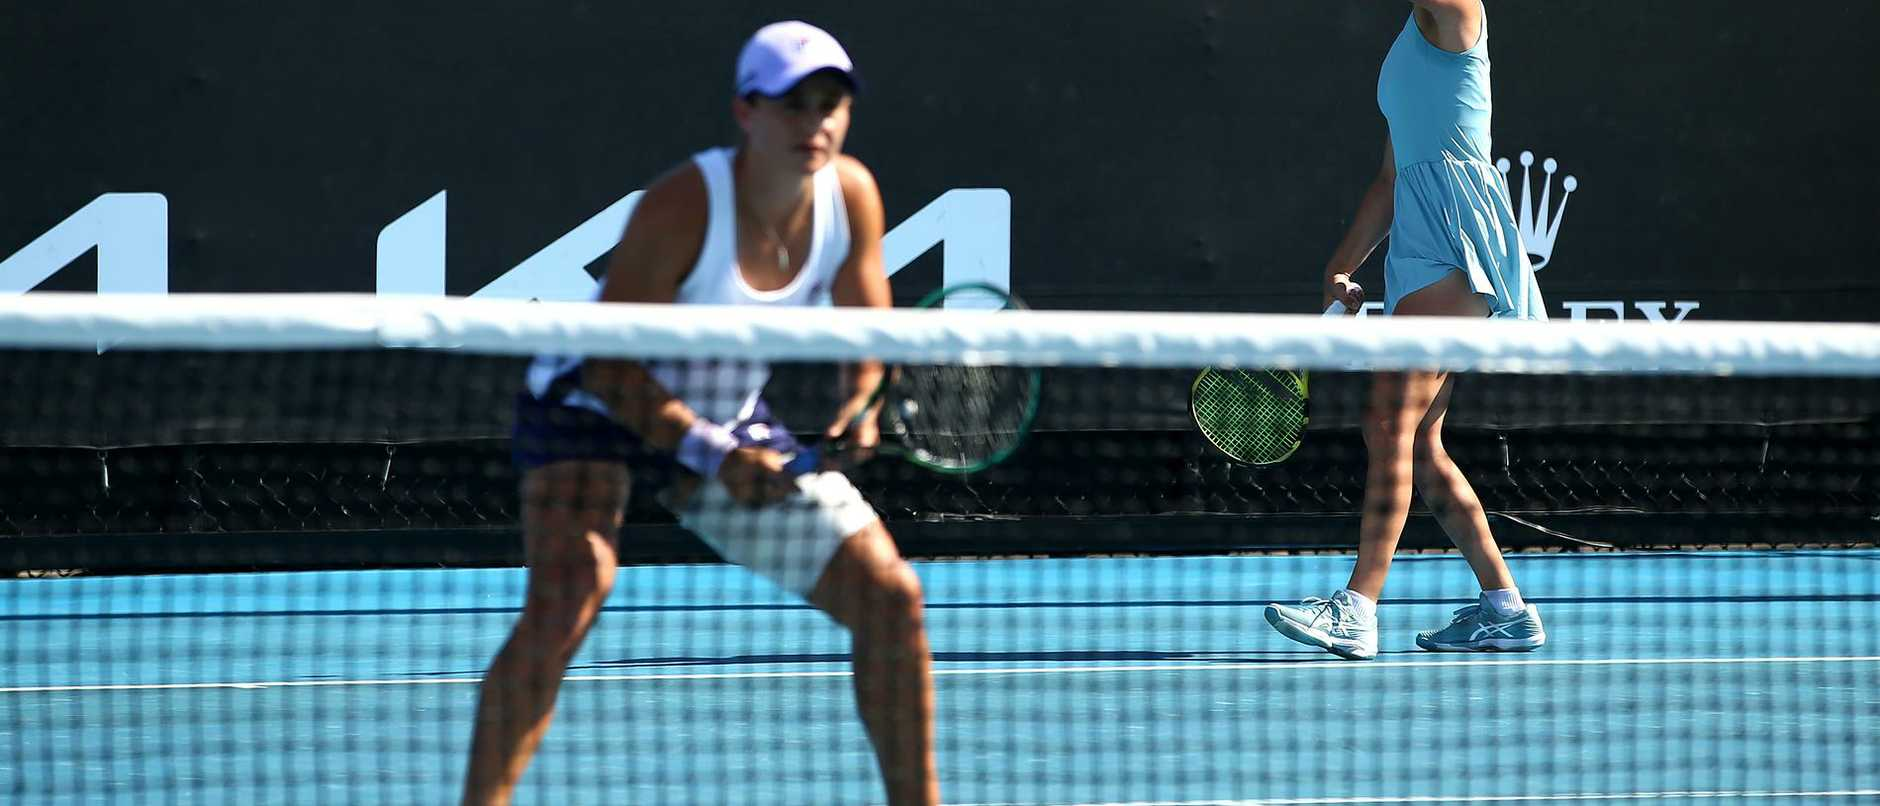 Ash Barty has taken to the courts with a heavily strapped thigh for a doubles match at the Australian Open